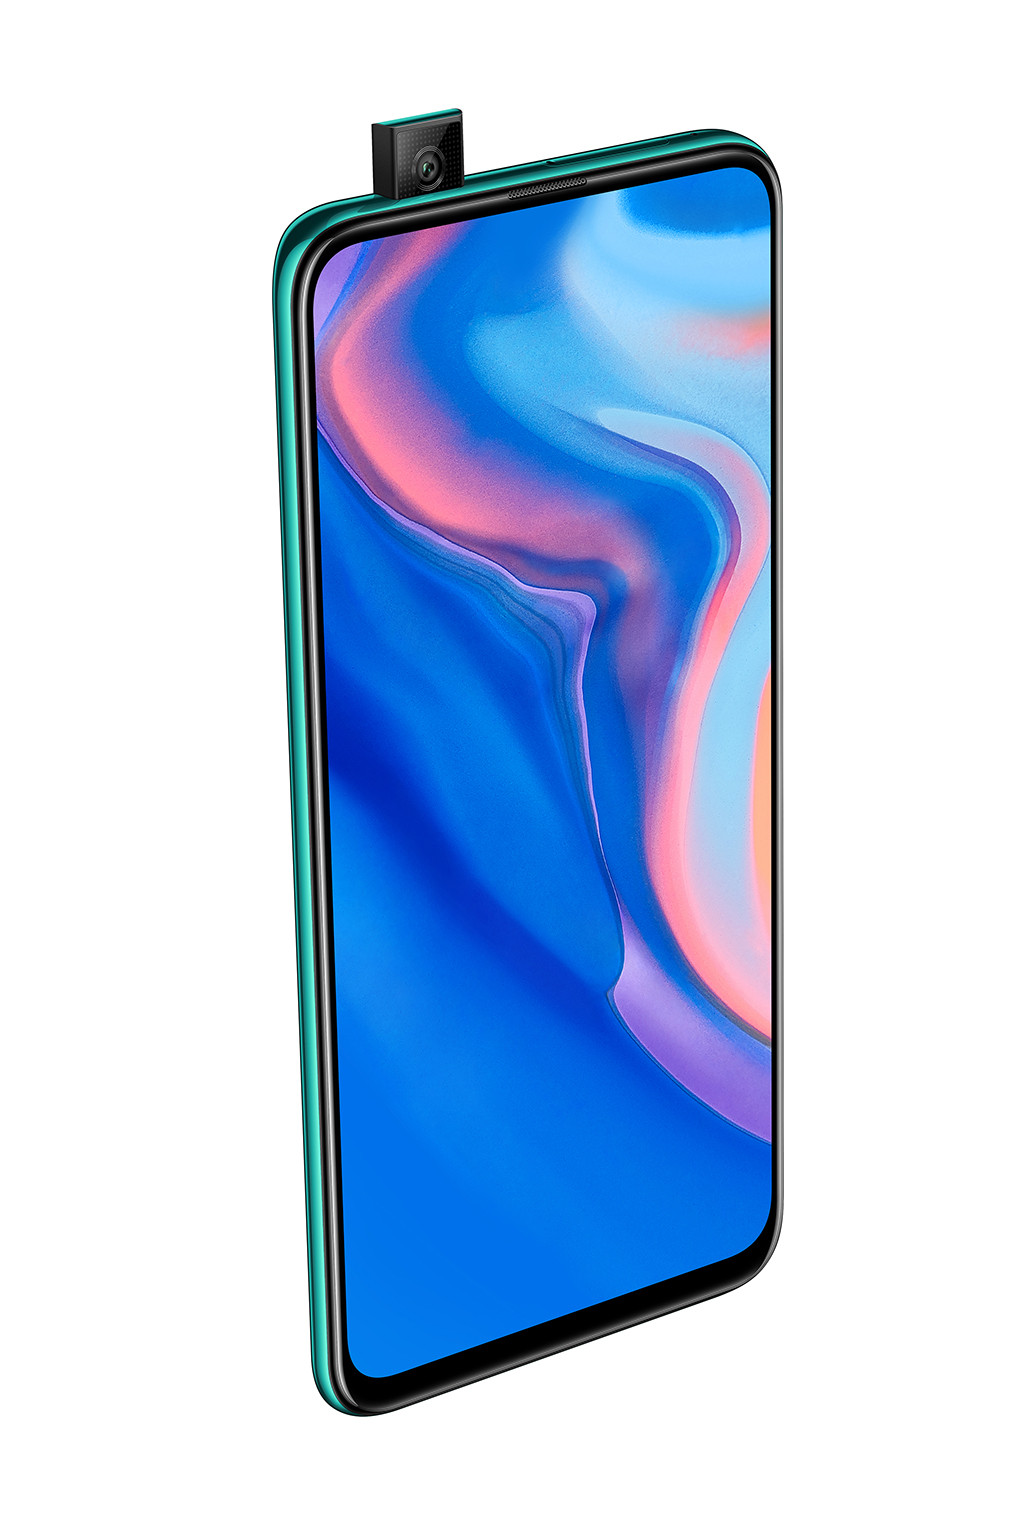 HUAWEI Y9 Prime 2019: A Smartphone that packs solid features including a Panoramic Viewing Experience and Auto Pop-up Selfie Camera, without breaking the bank